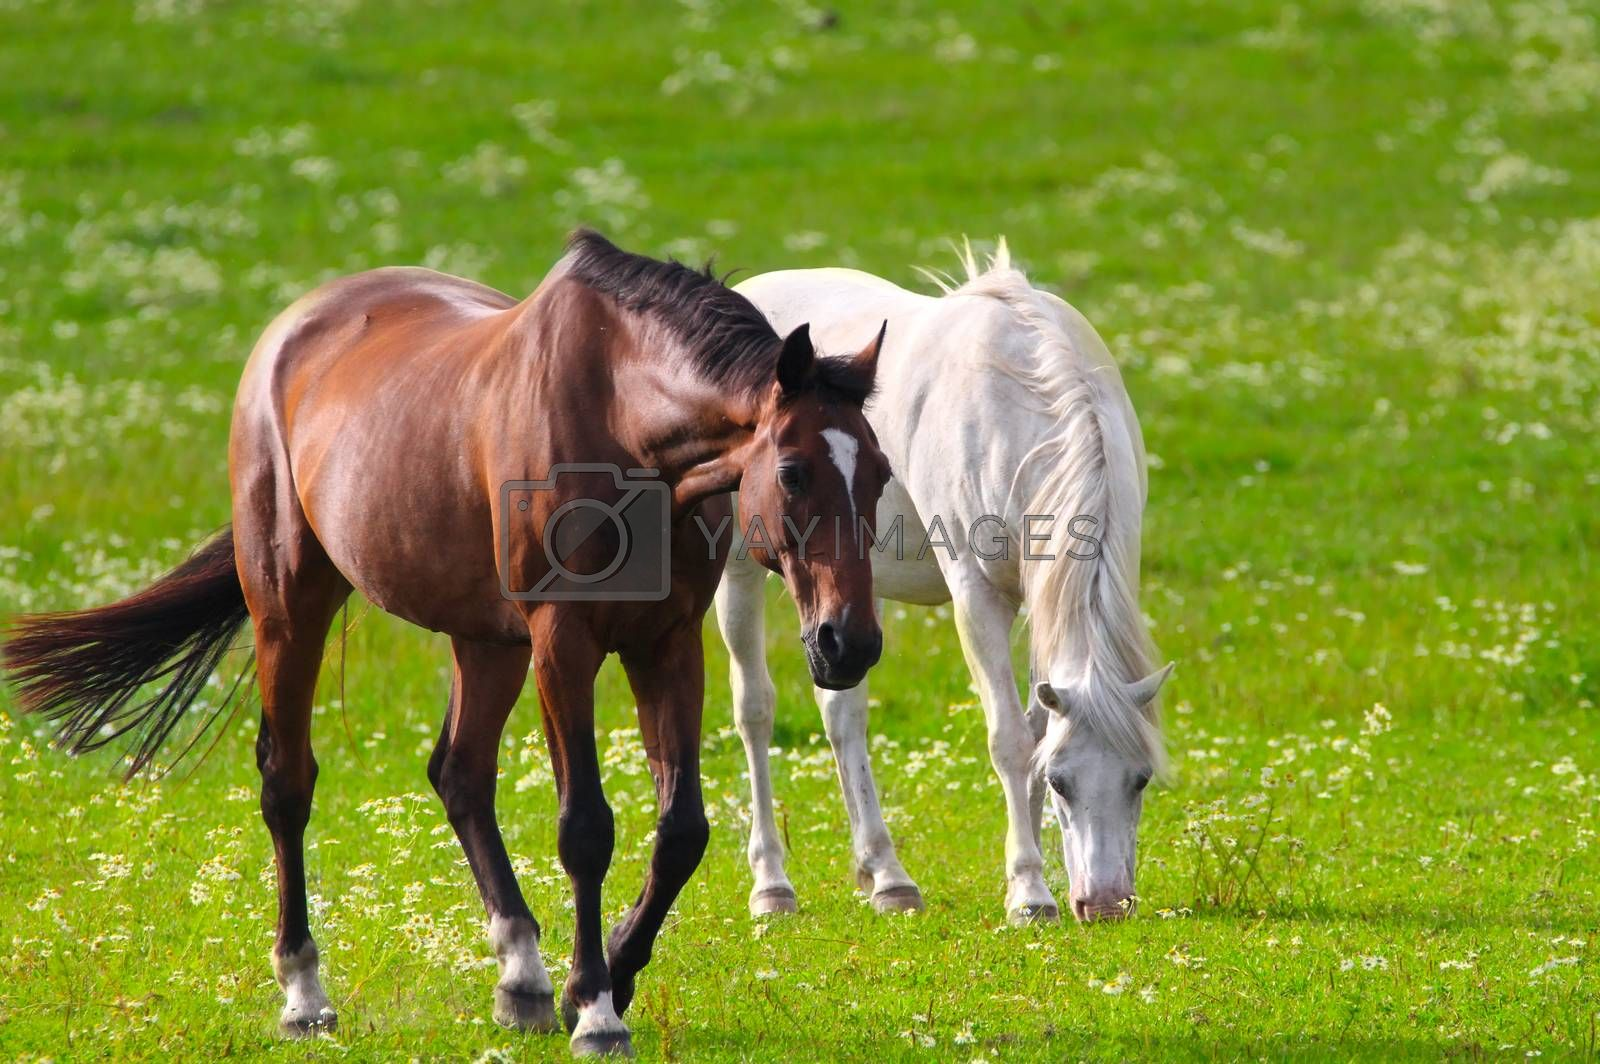 Brown and white horse together on a beautiful green field in summertime. Brown horse in the front and white horse on background.